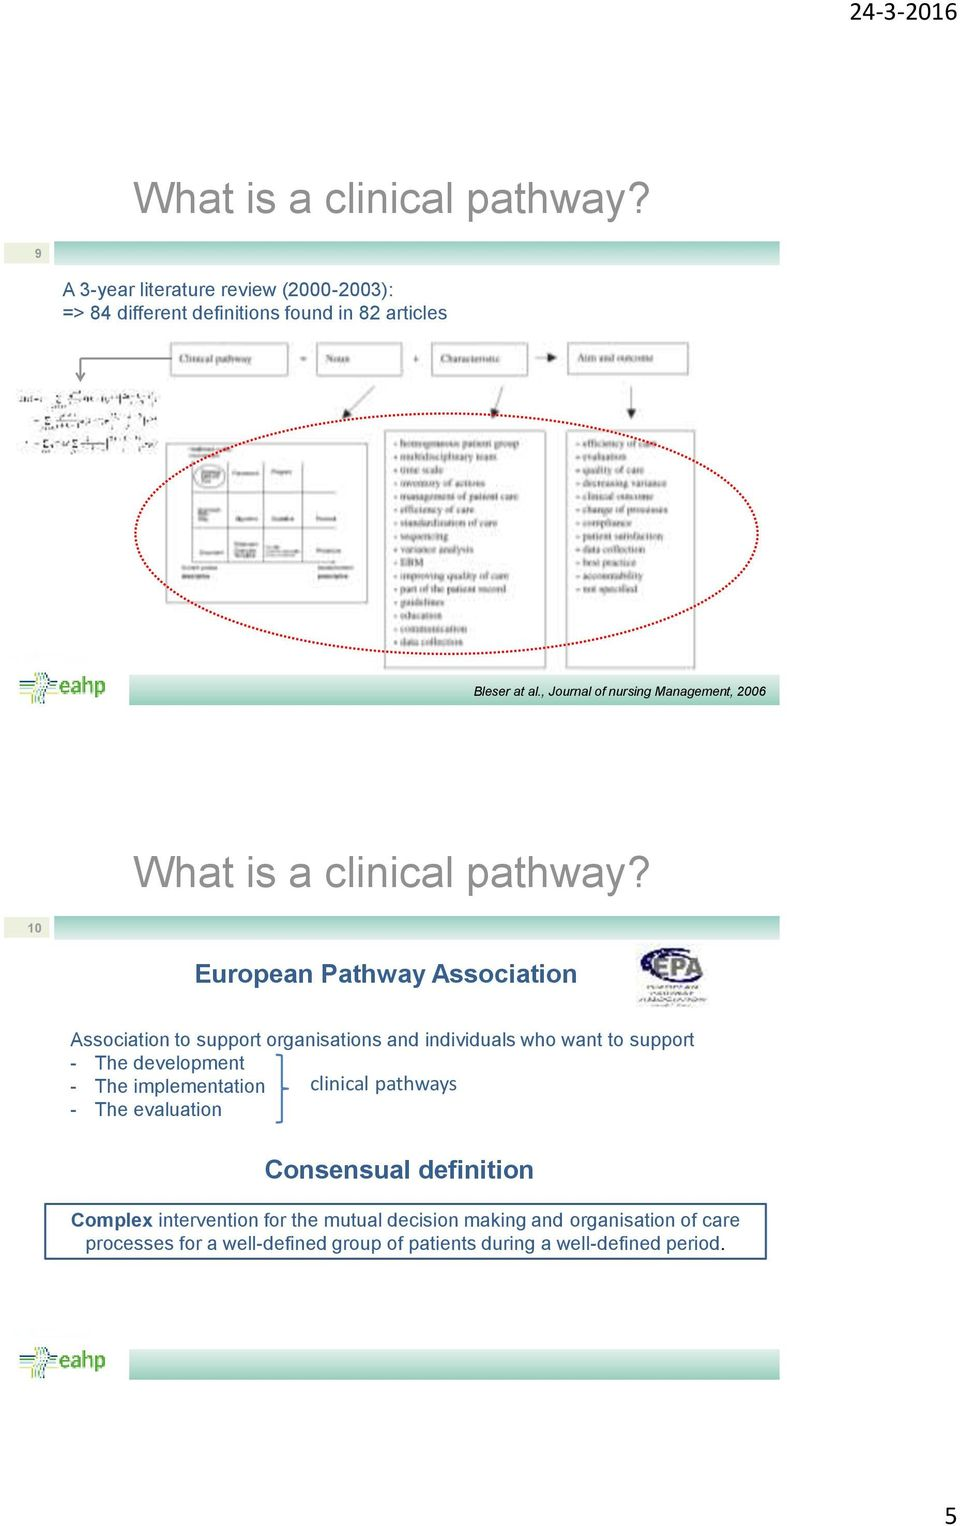 10 European Pathway Association Association to support organisations and individuals who want to support - The development - The